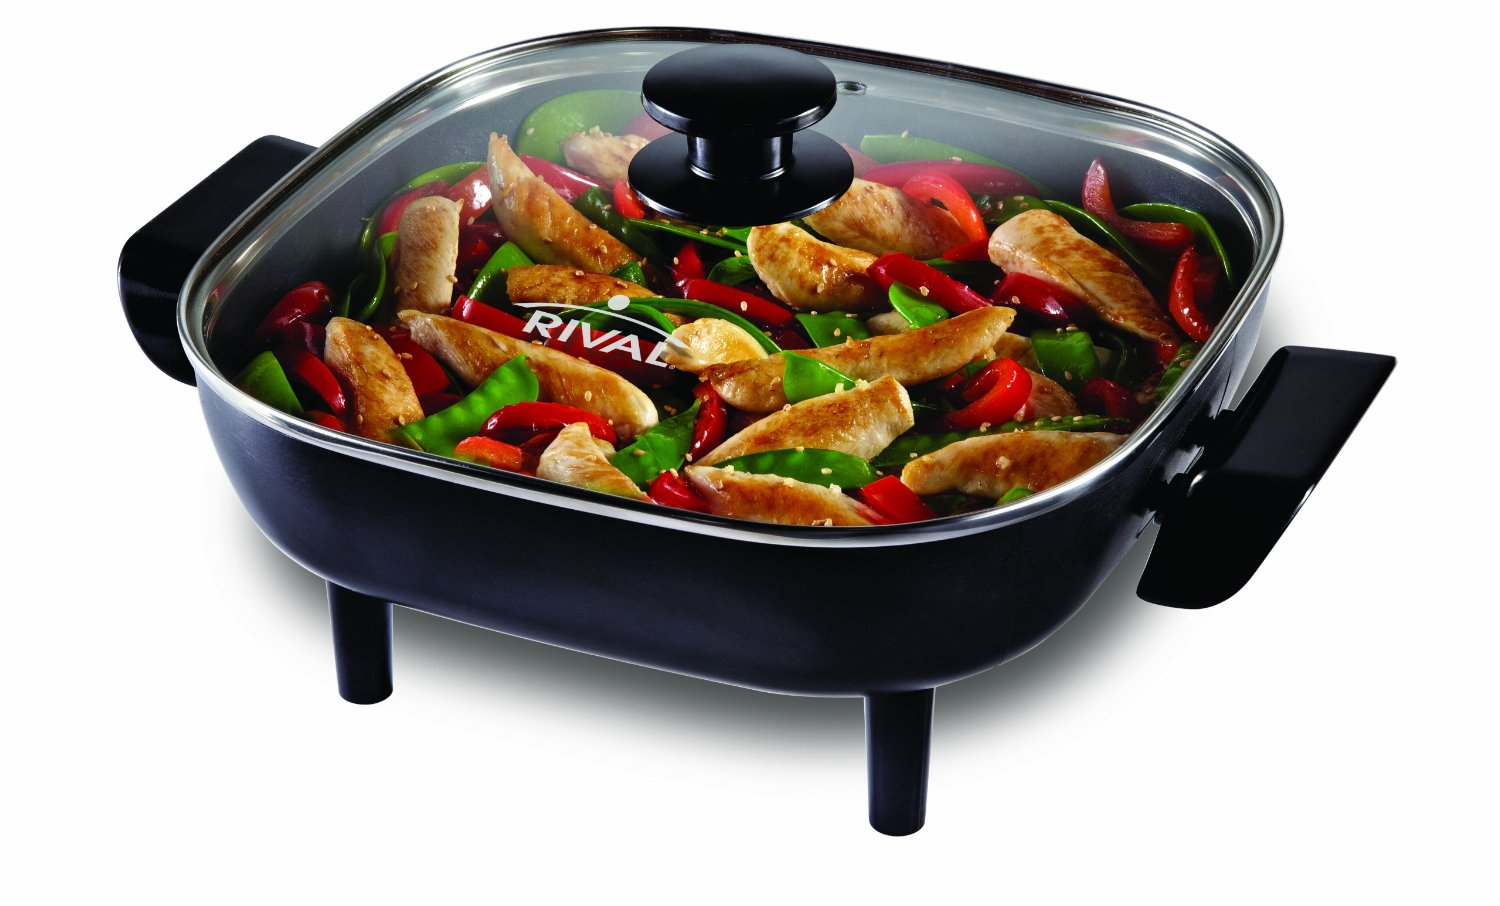 Rival 11-Inch Square Electric Skillet